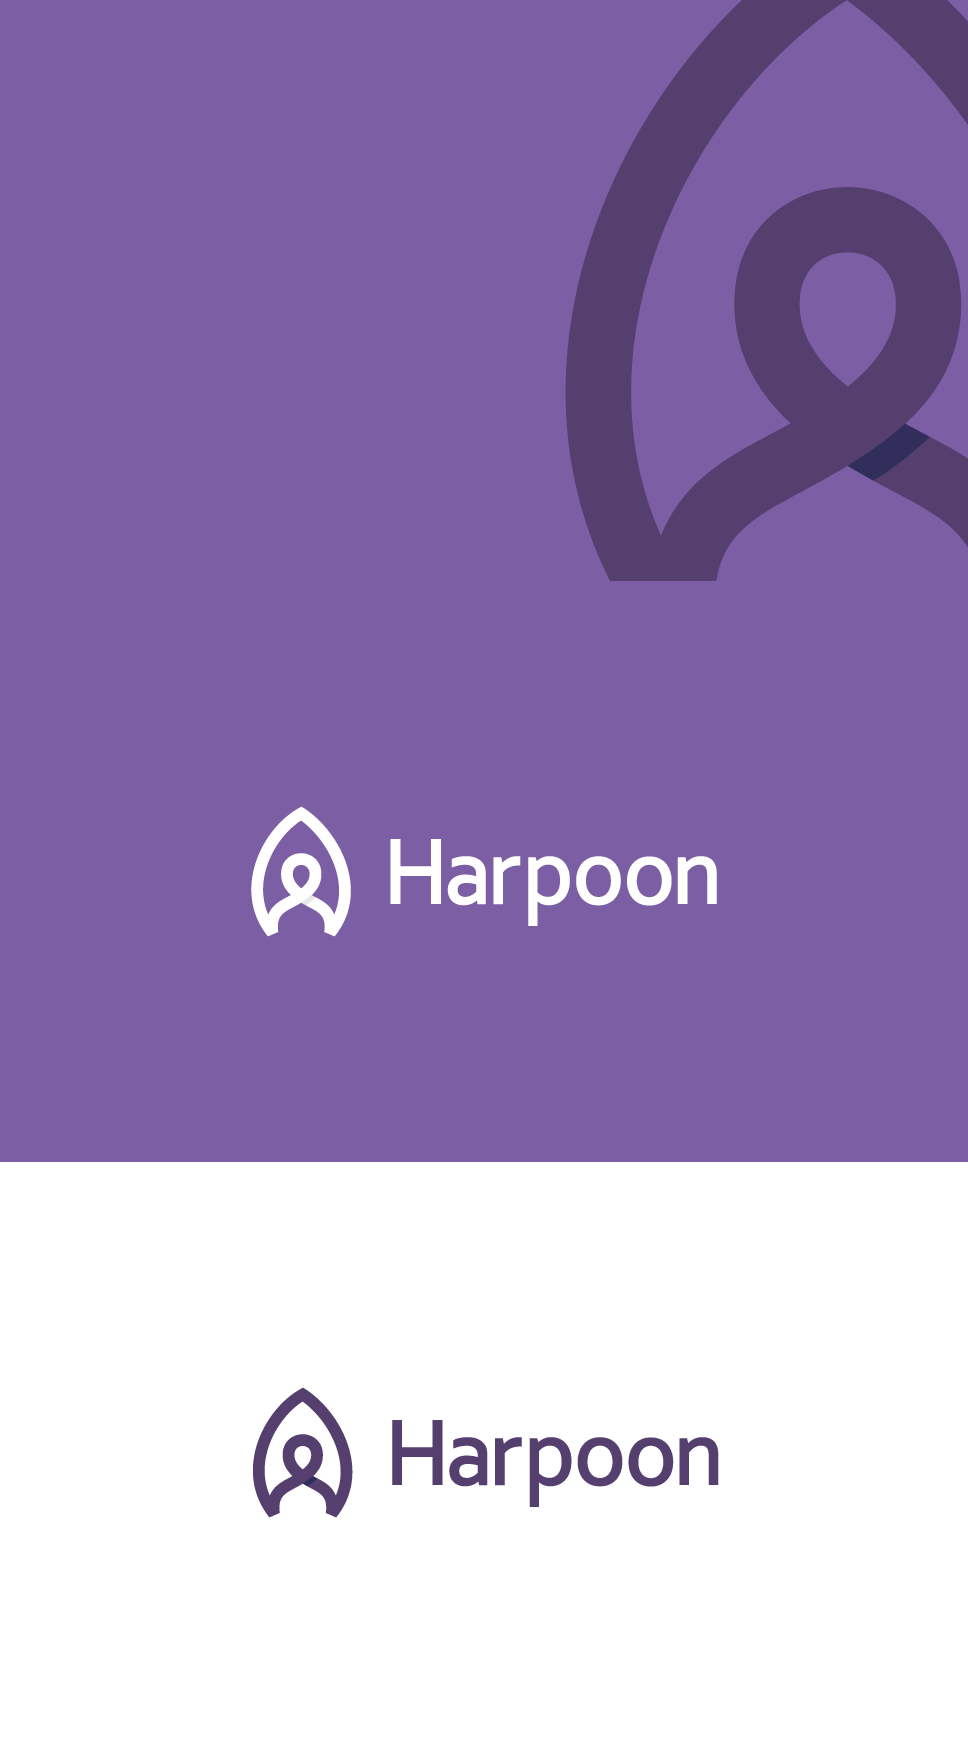 professional, clever logo design for harpoon. Harpoon image combined with human. Stands for a talent hunt, recruiting.